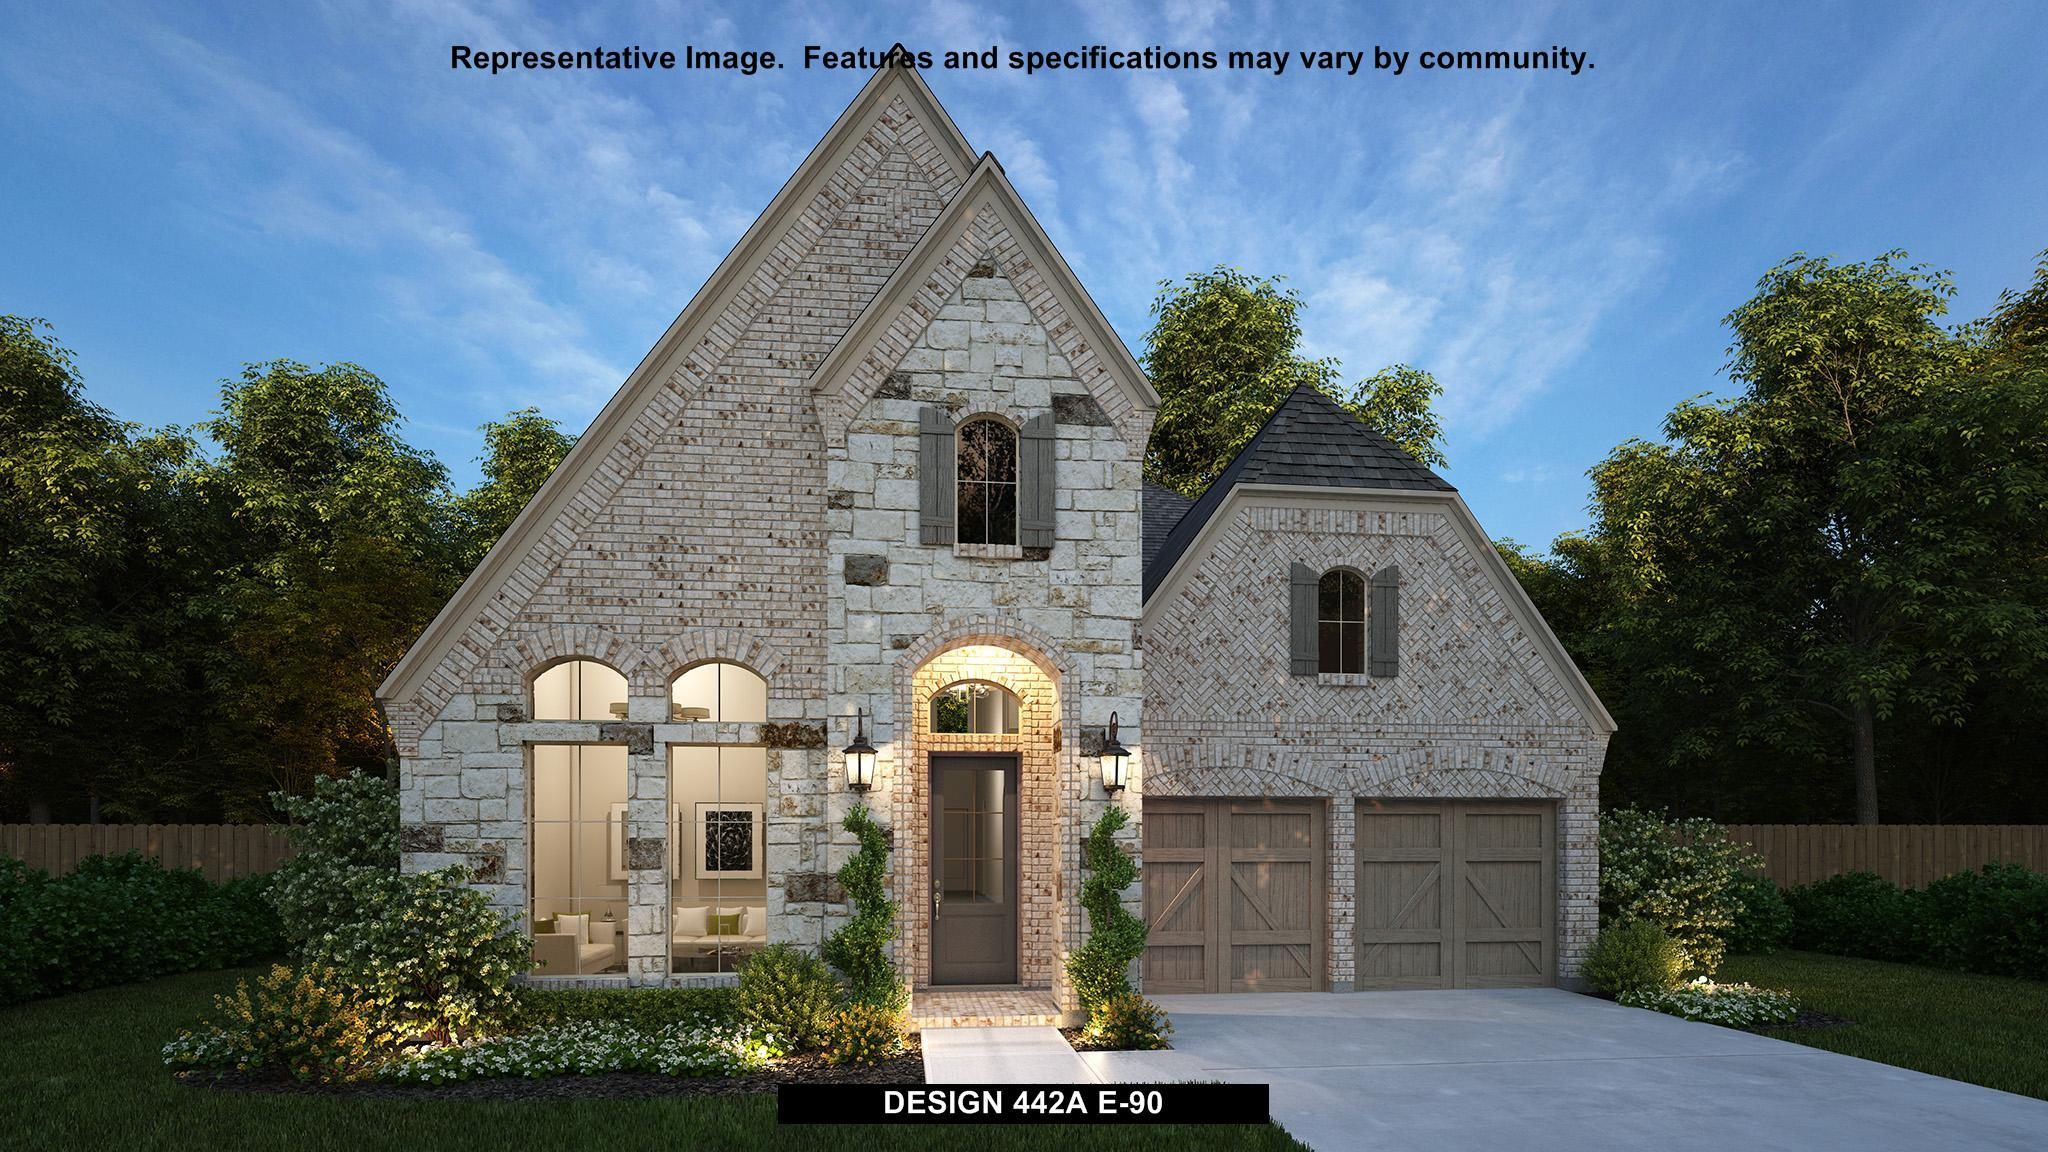 Single Family for Active at Castle Hills 50' - 442a 4412 Tall Knight Lane Carrollton, Texas 75010 United States